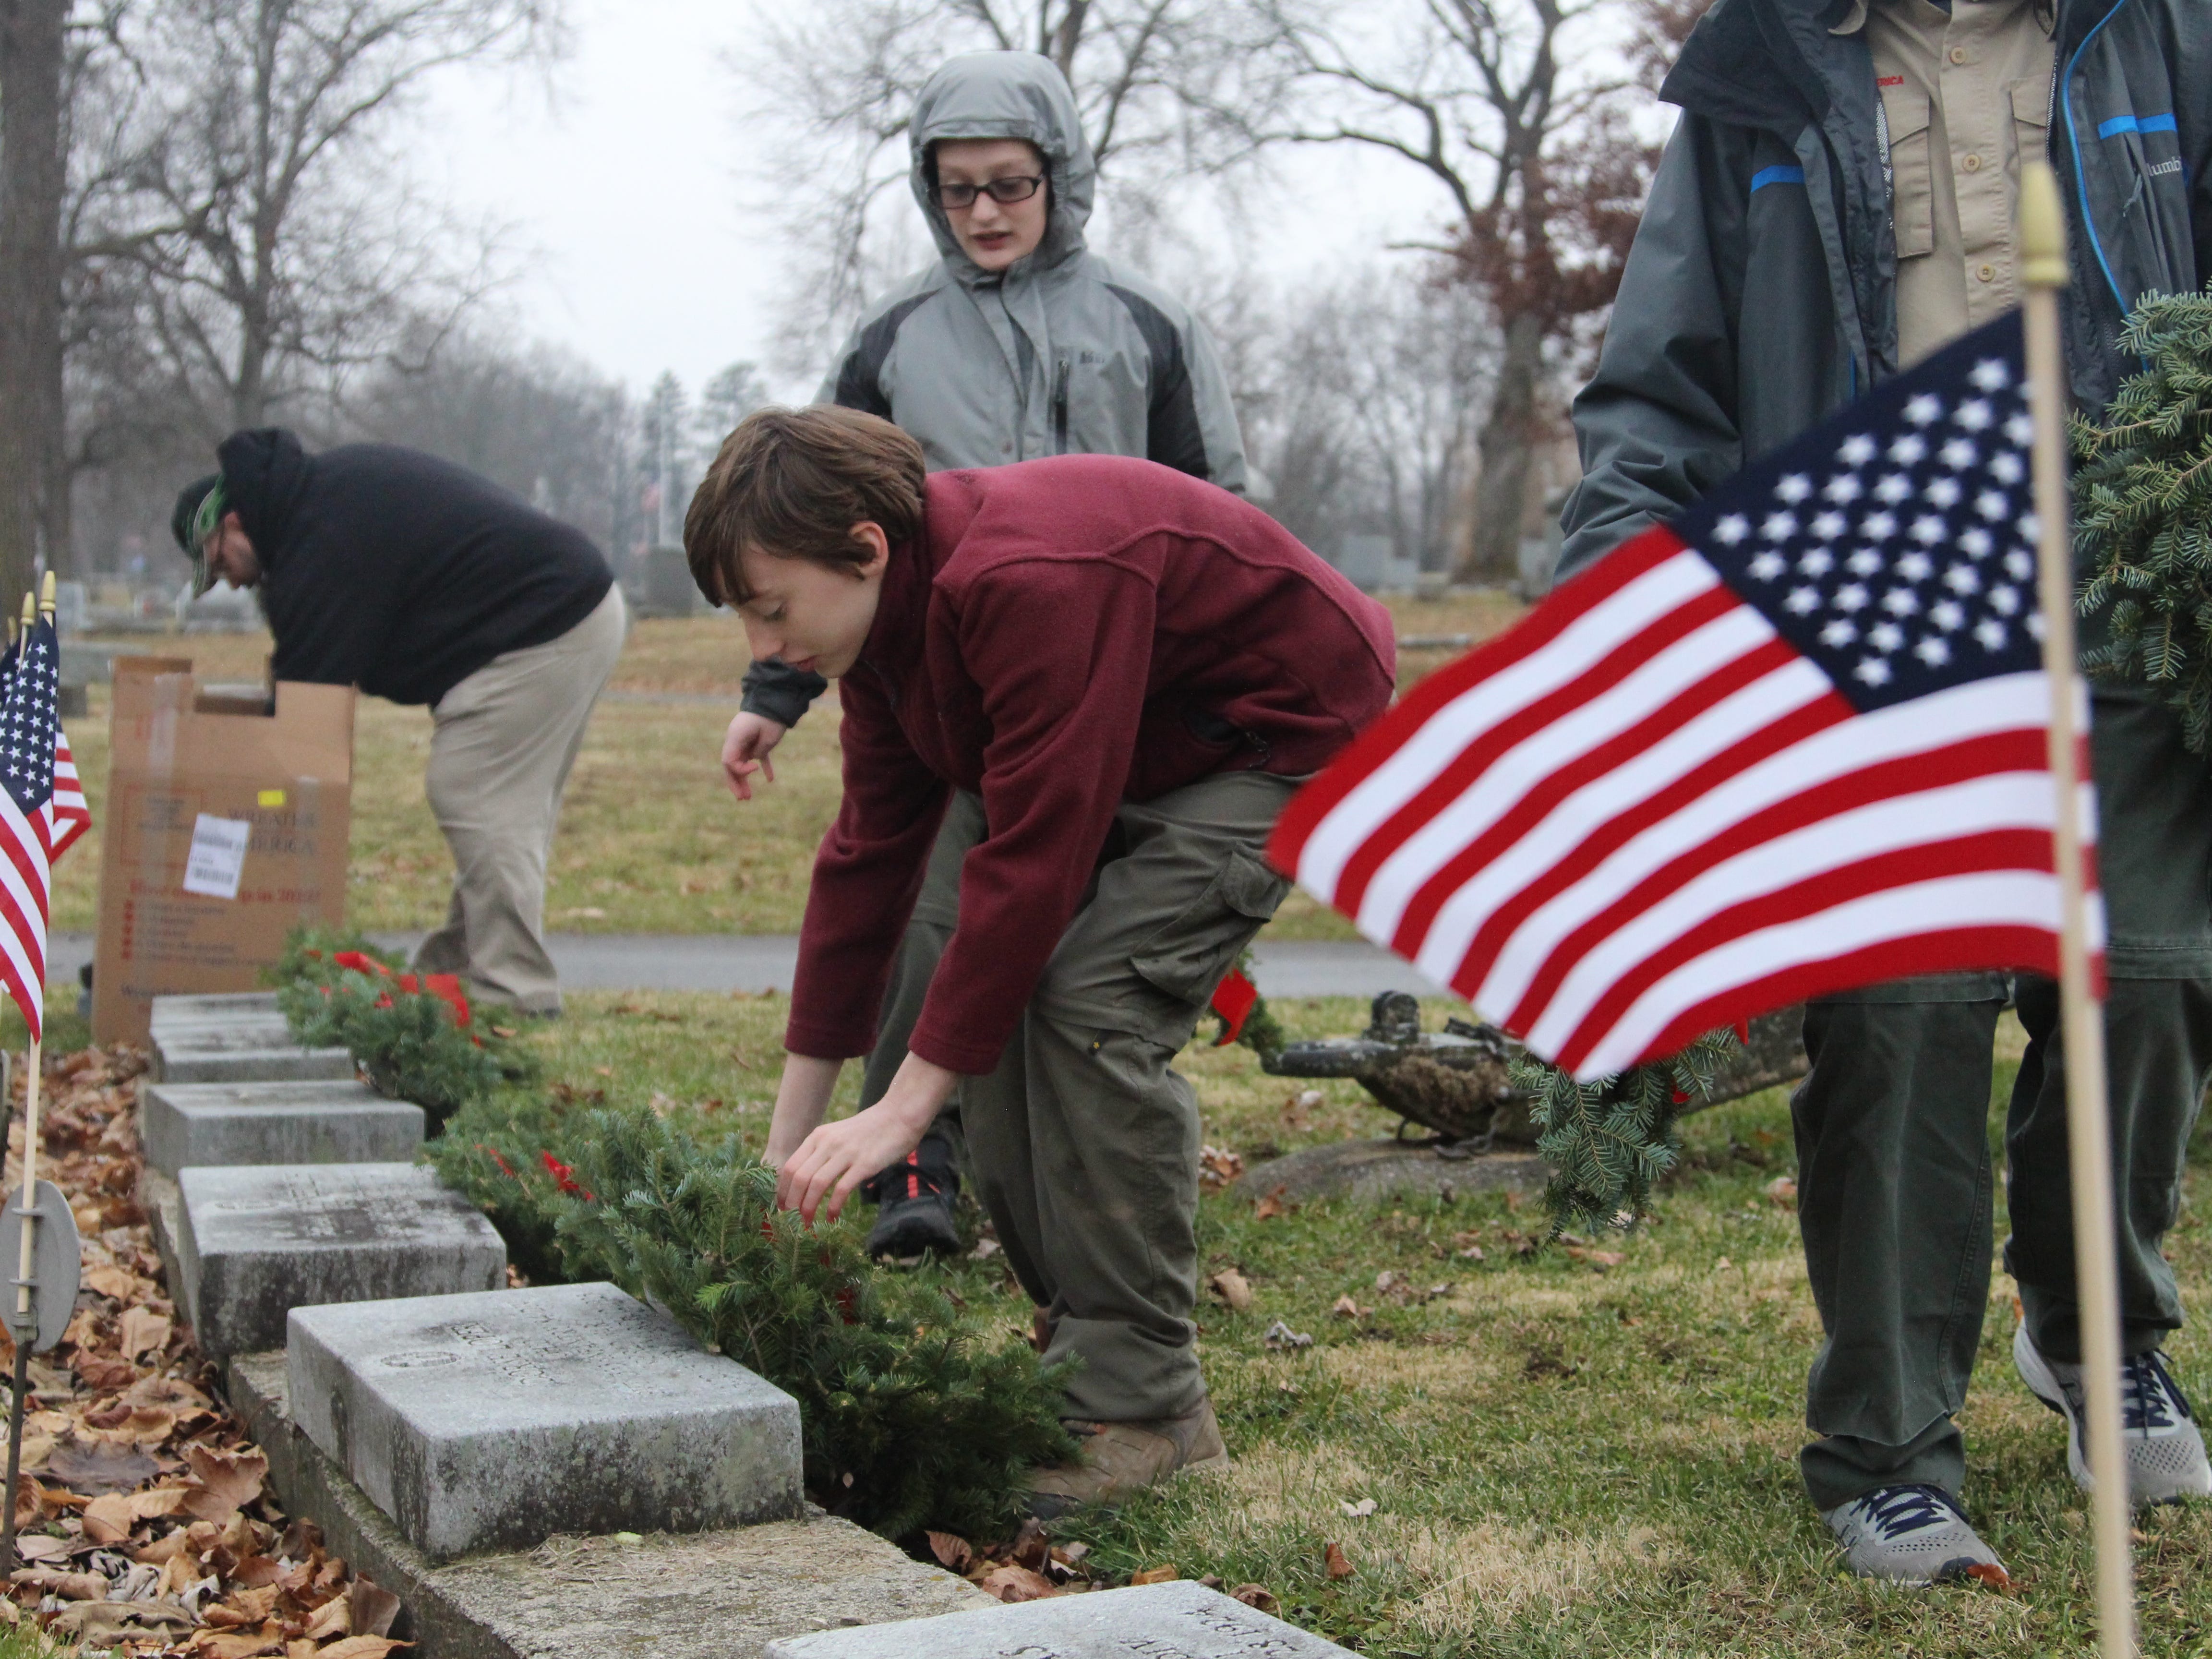 Jacob Van Voorhis, 13, lays a wreath on the grave of a military veteran Saturday at Marion Cemetery. He was one of the volunteers who took part in Wreaths Across America, a nationwide effort to honor military veterans around the holidays.